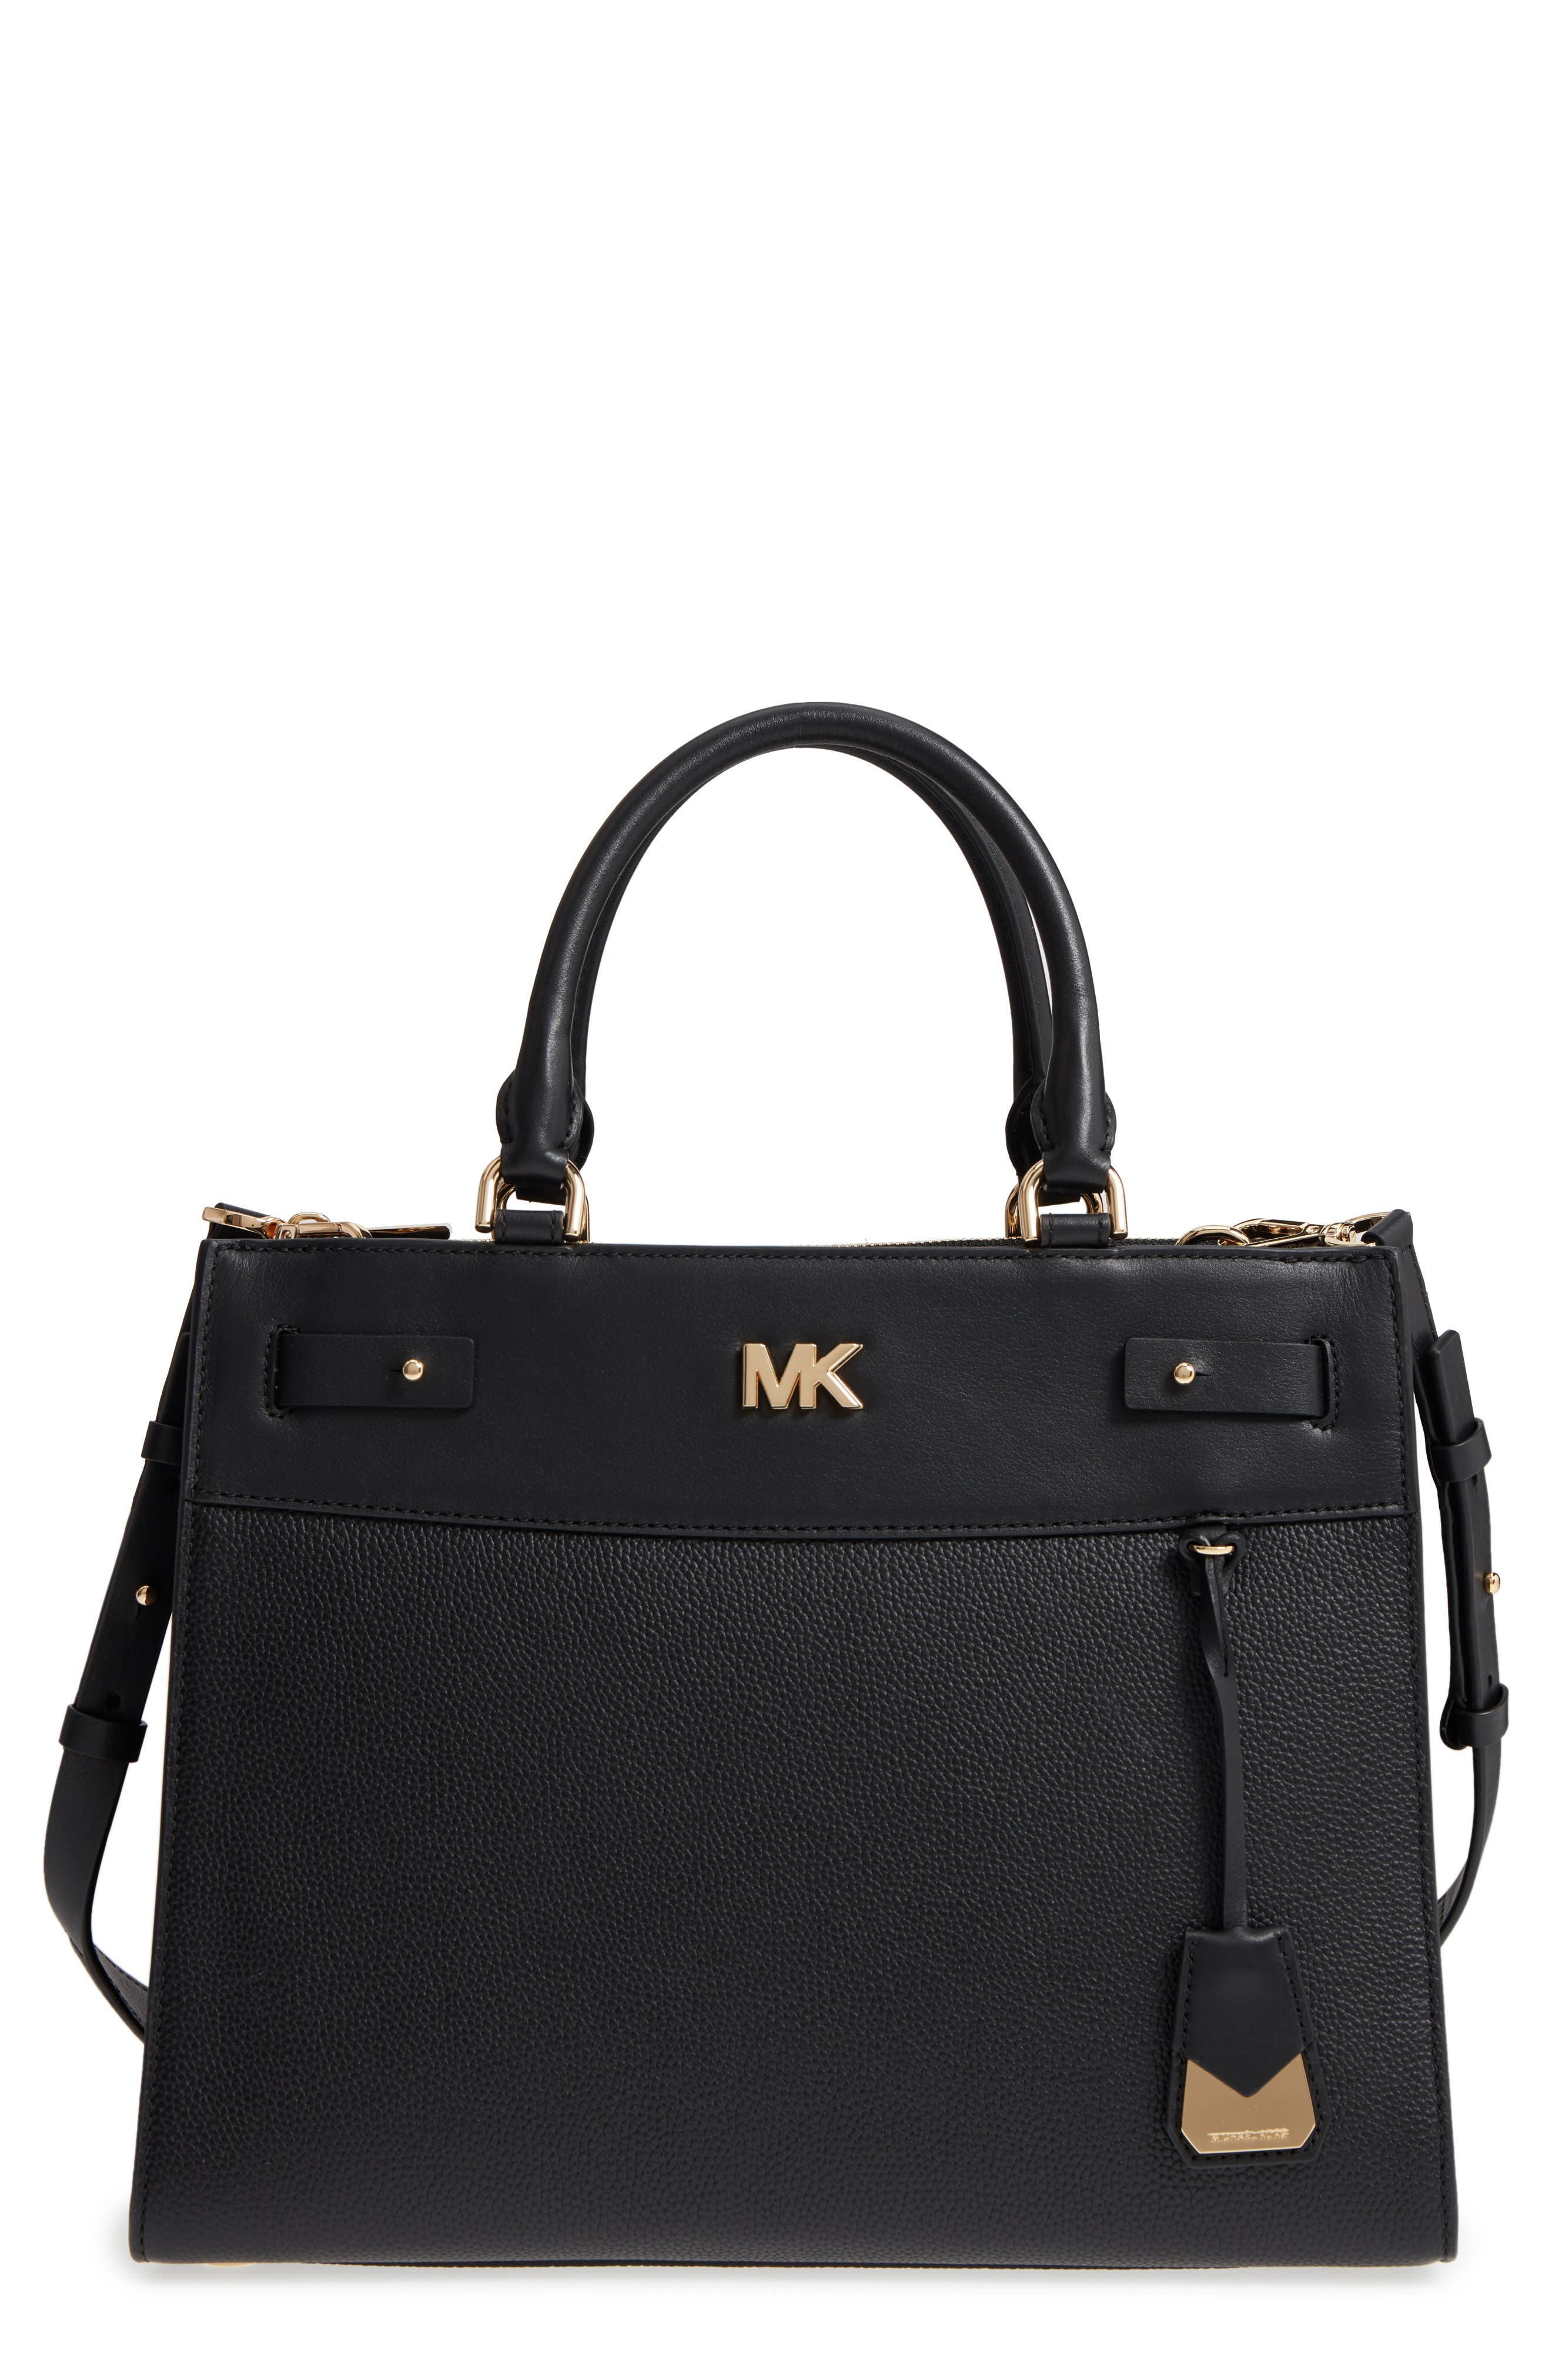 Reagan Large Leather Satchel,                         Main,                         color, Black